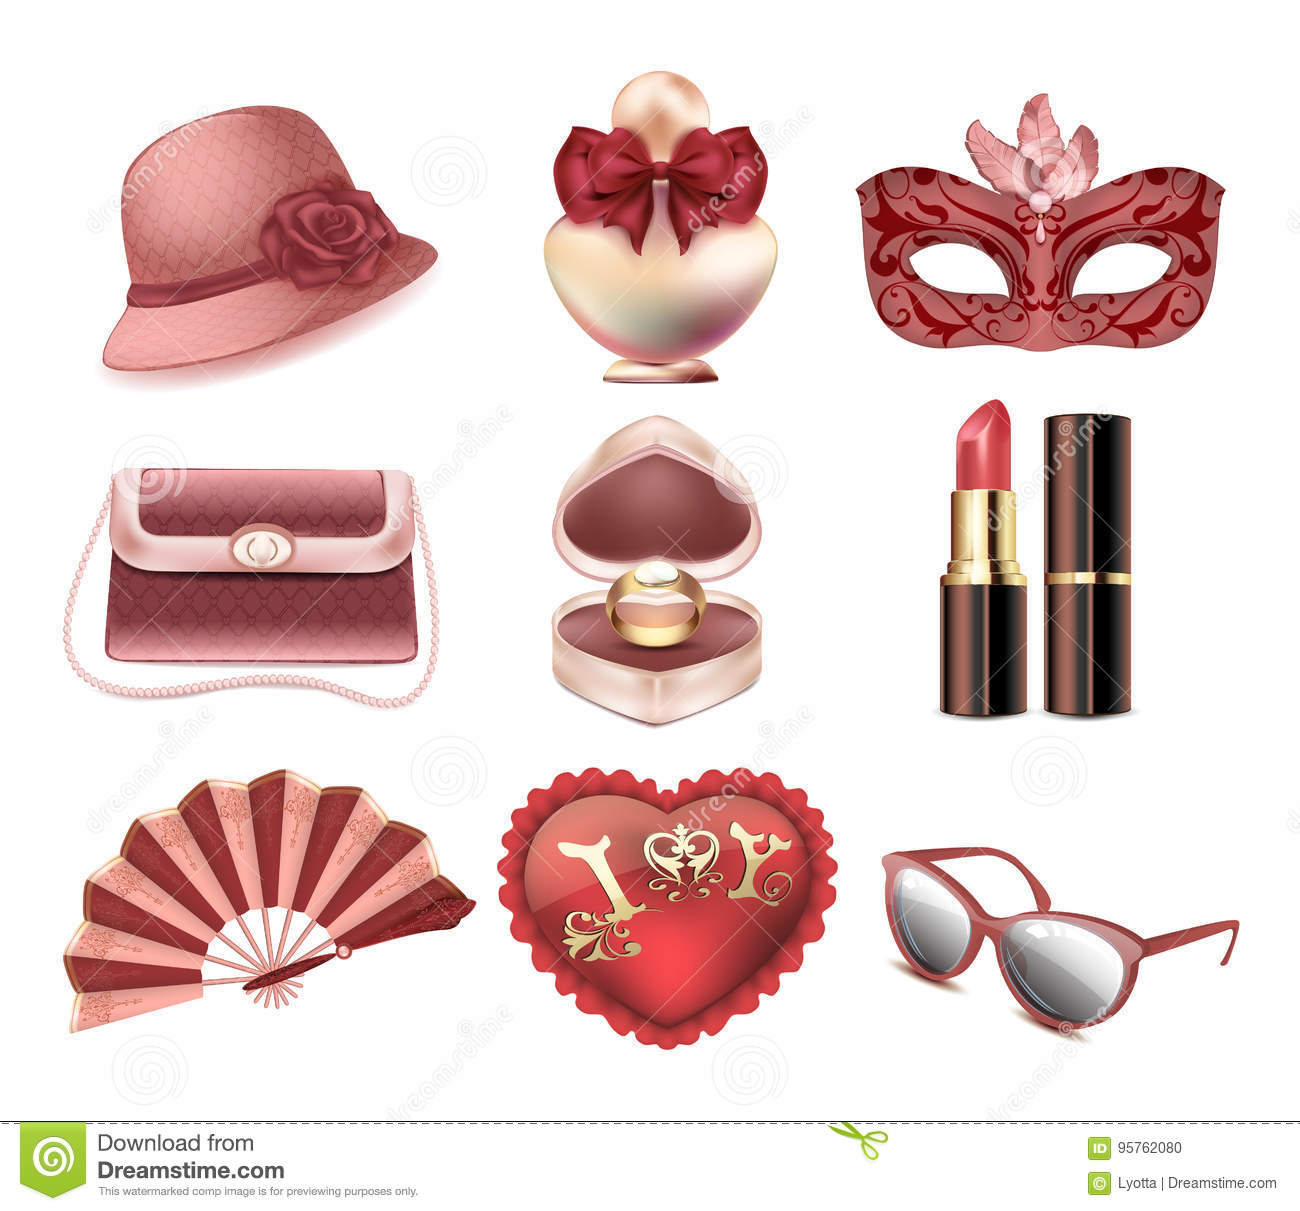 Vector set of womens fashion accessories. Hat, carnival mask, handbag, fan, heart pillow, perfume, lipstick, ring with a diamond